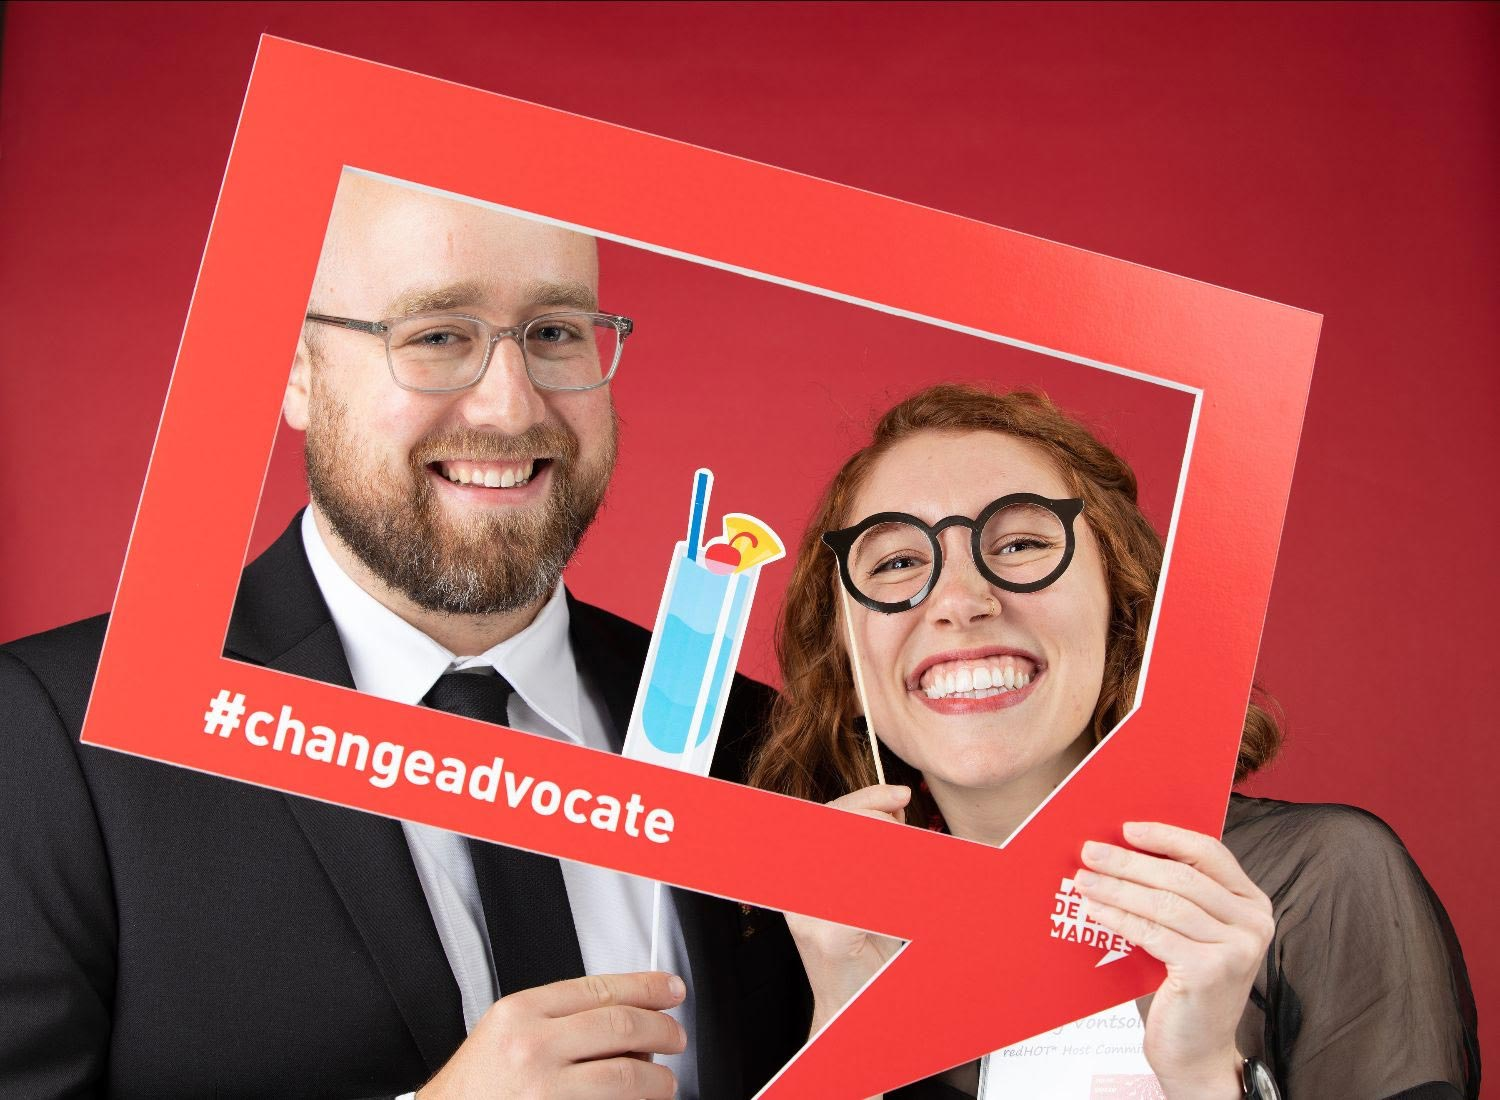 Two party-goers holding a Change Advocate quote box